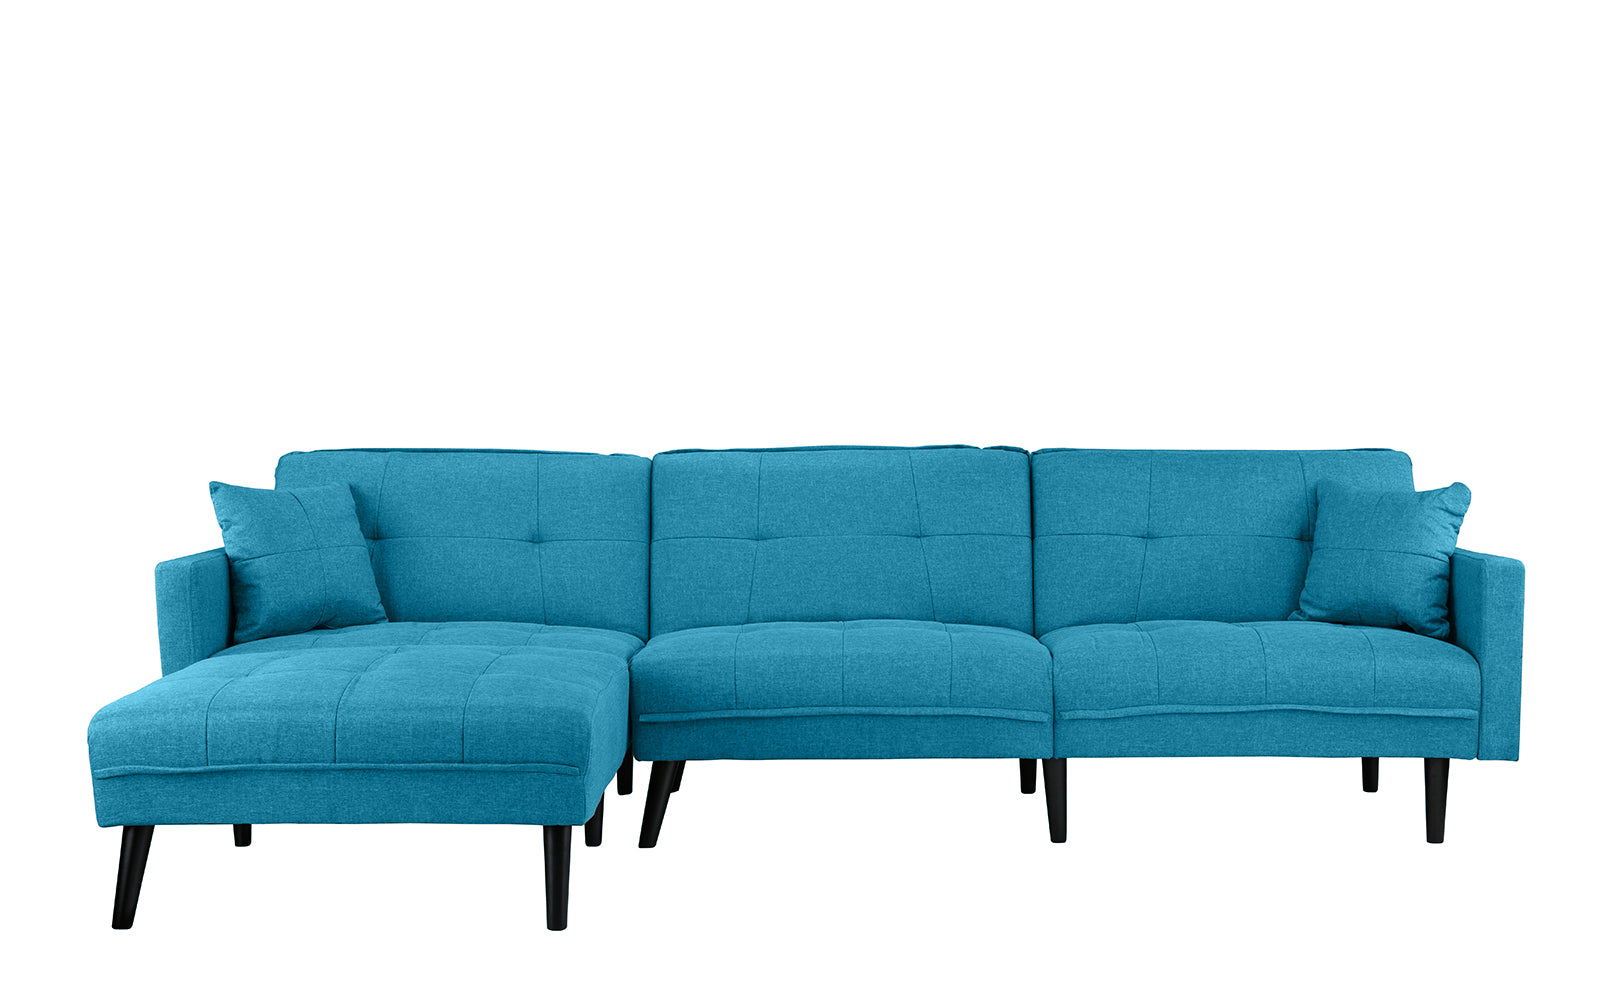 Amazing Romulo Mid Century Modern Linen Sleeper Sectional Sofa With Chaise Forskolin Free Trial Chair Design Images Forskolin Free Trialorg